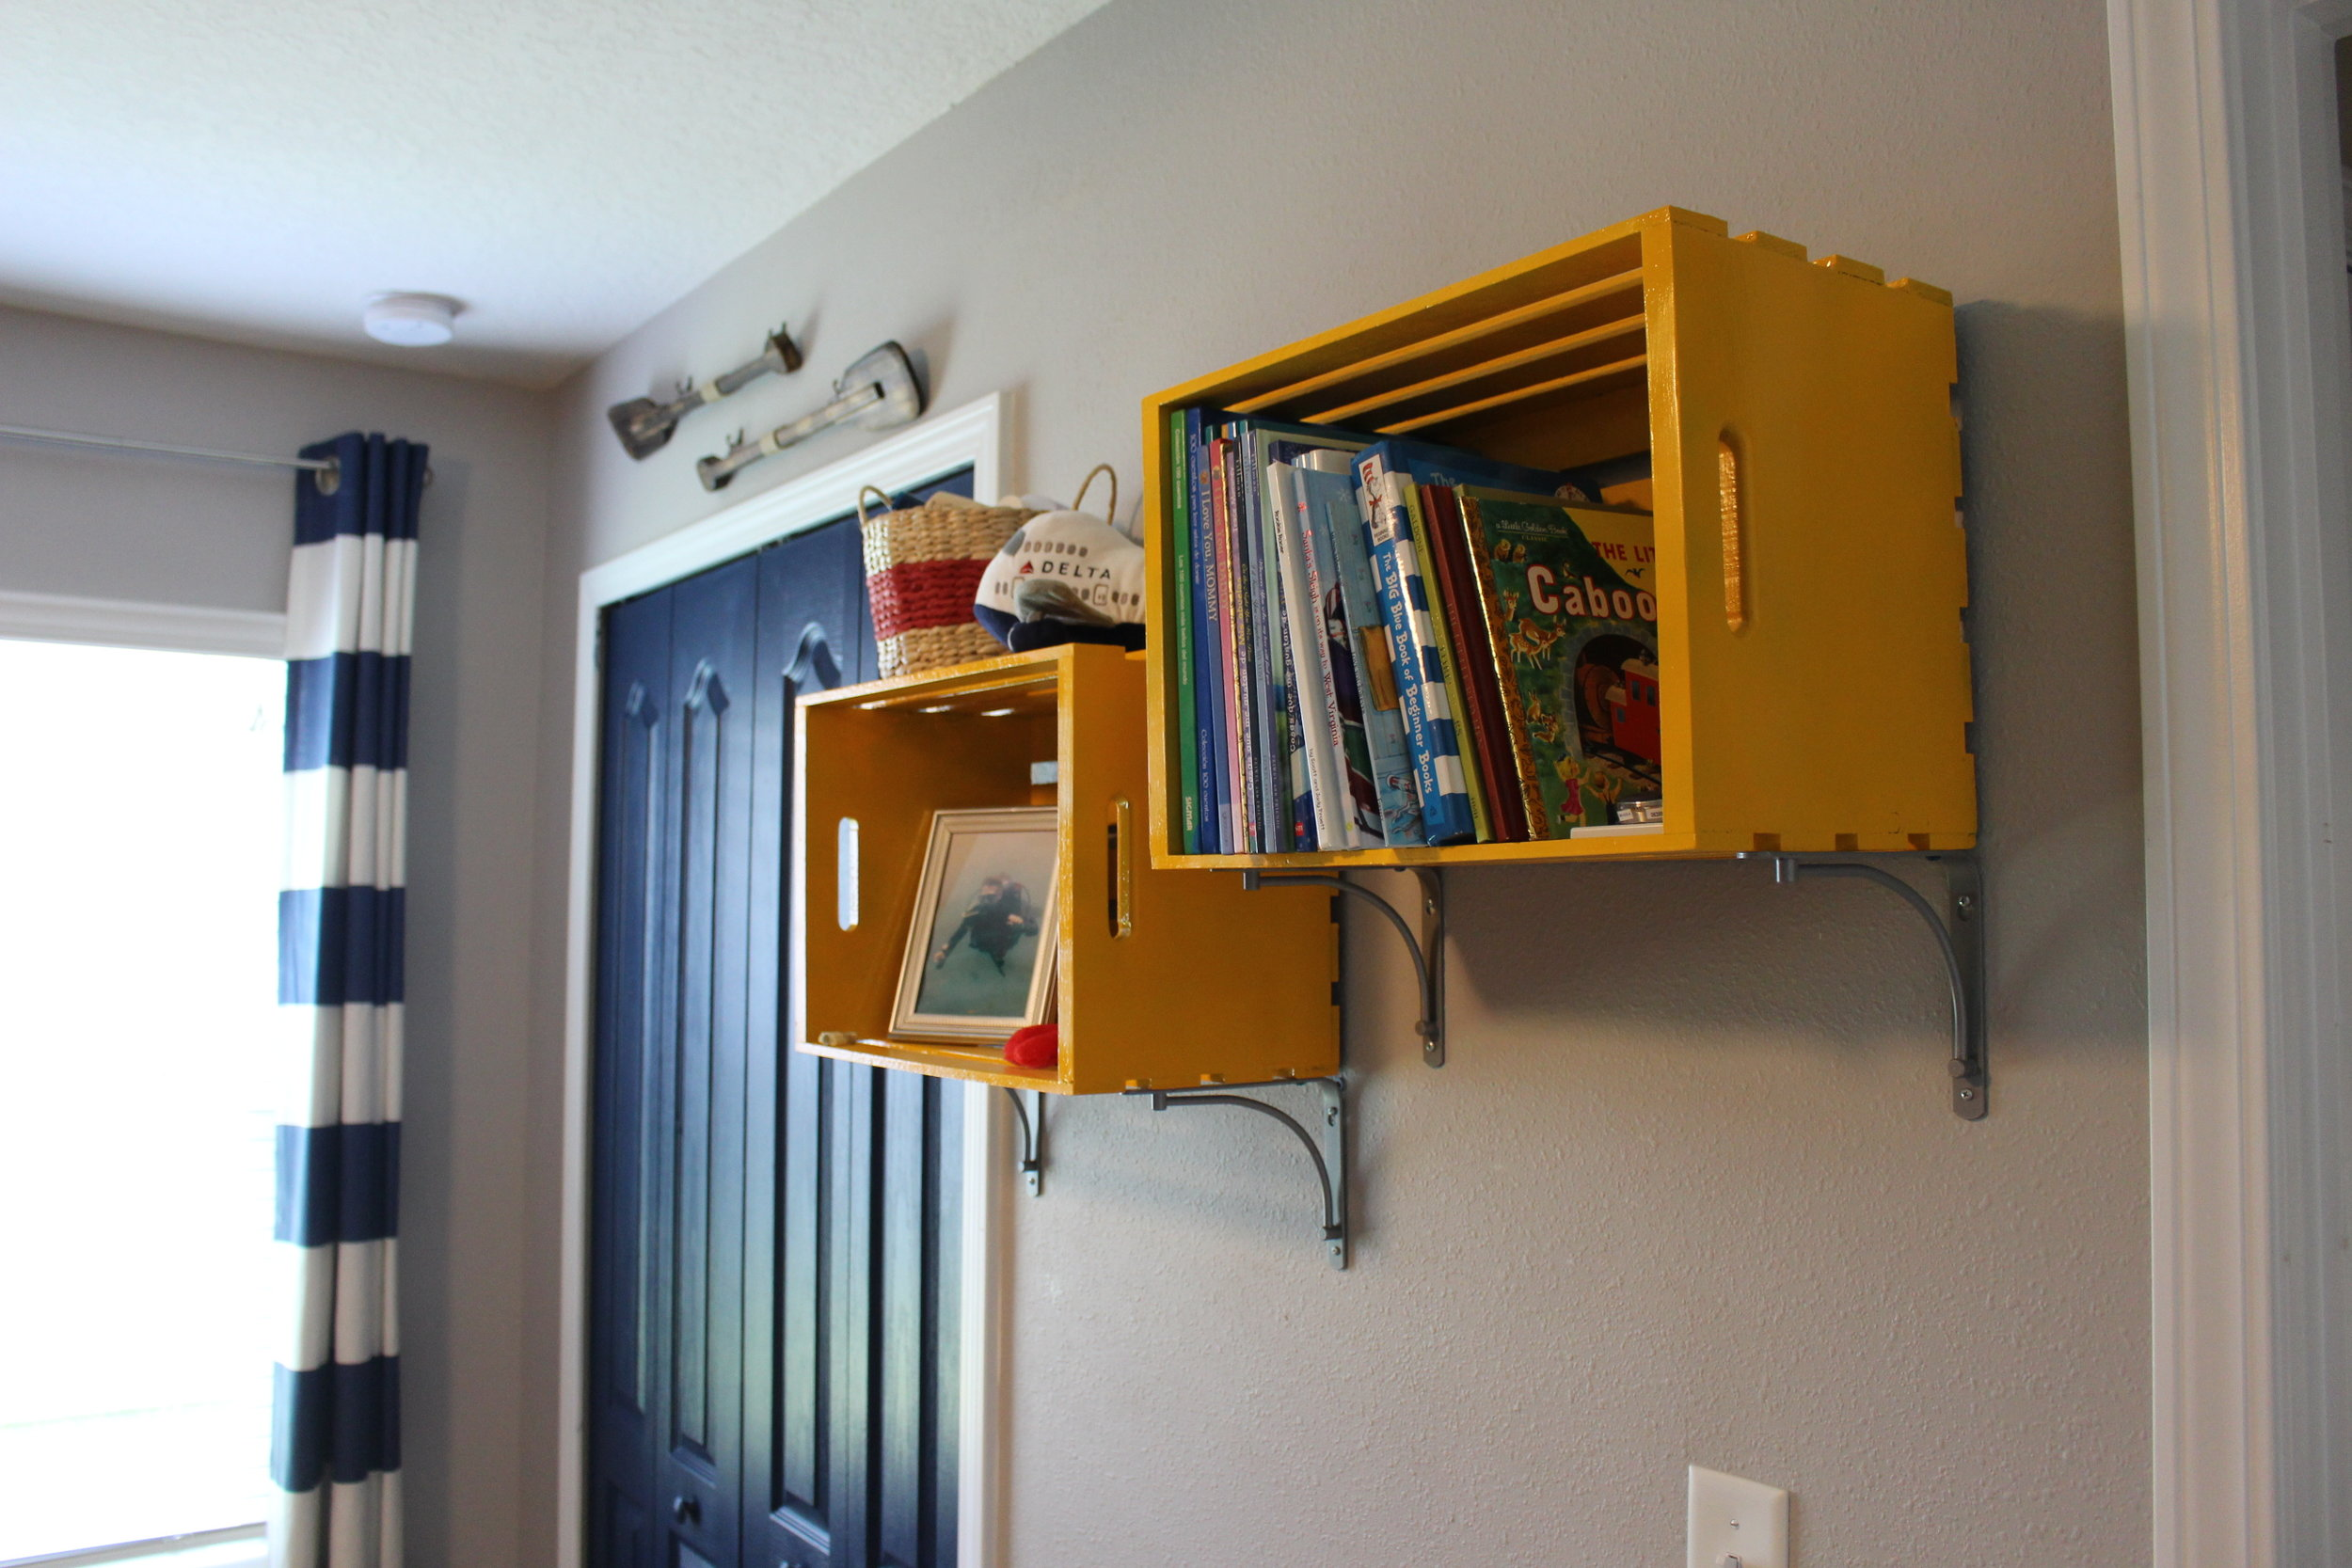 Wood crates as shelves